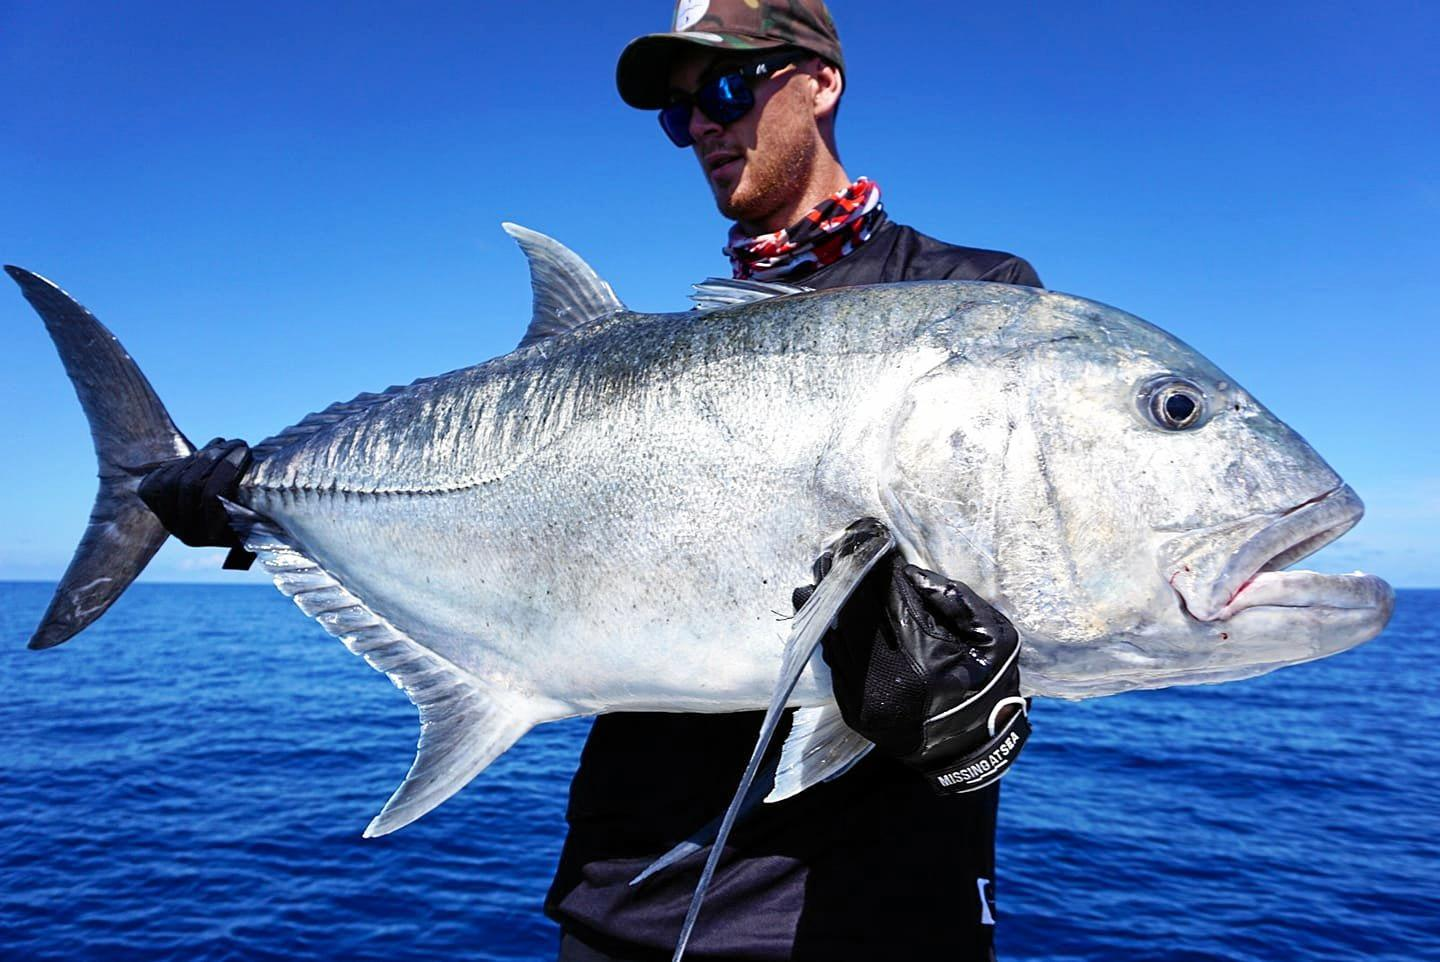 Jake Reilly with a giant trevally caught off Mackay.